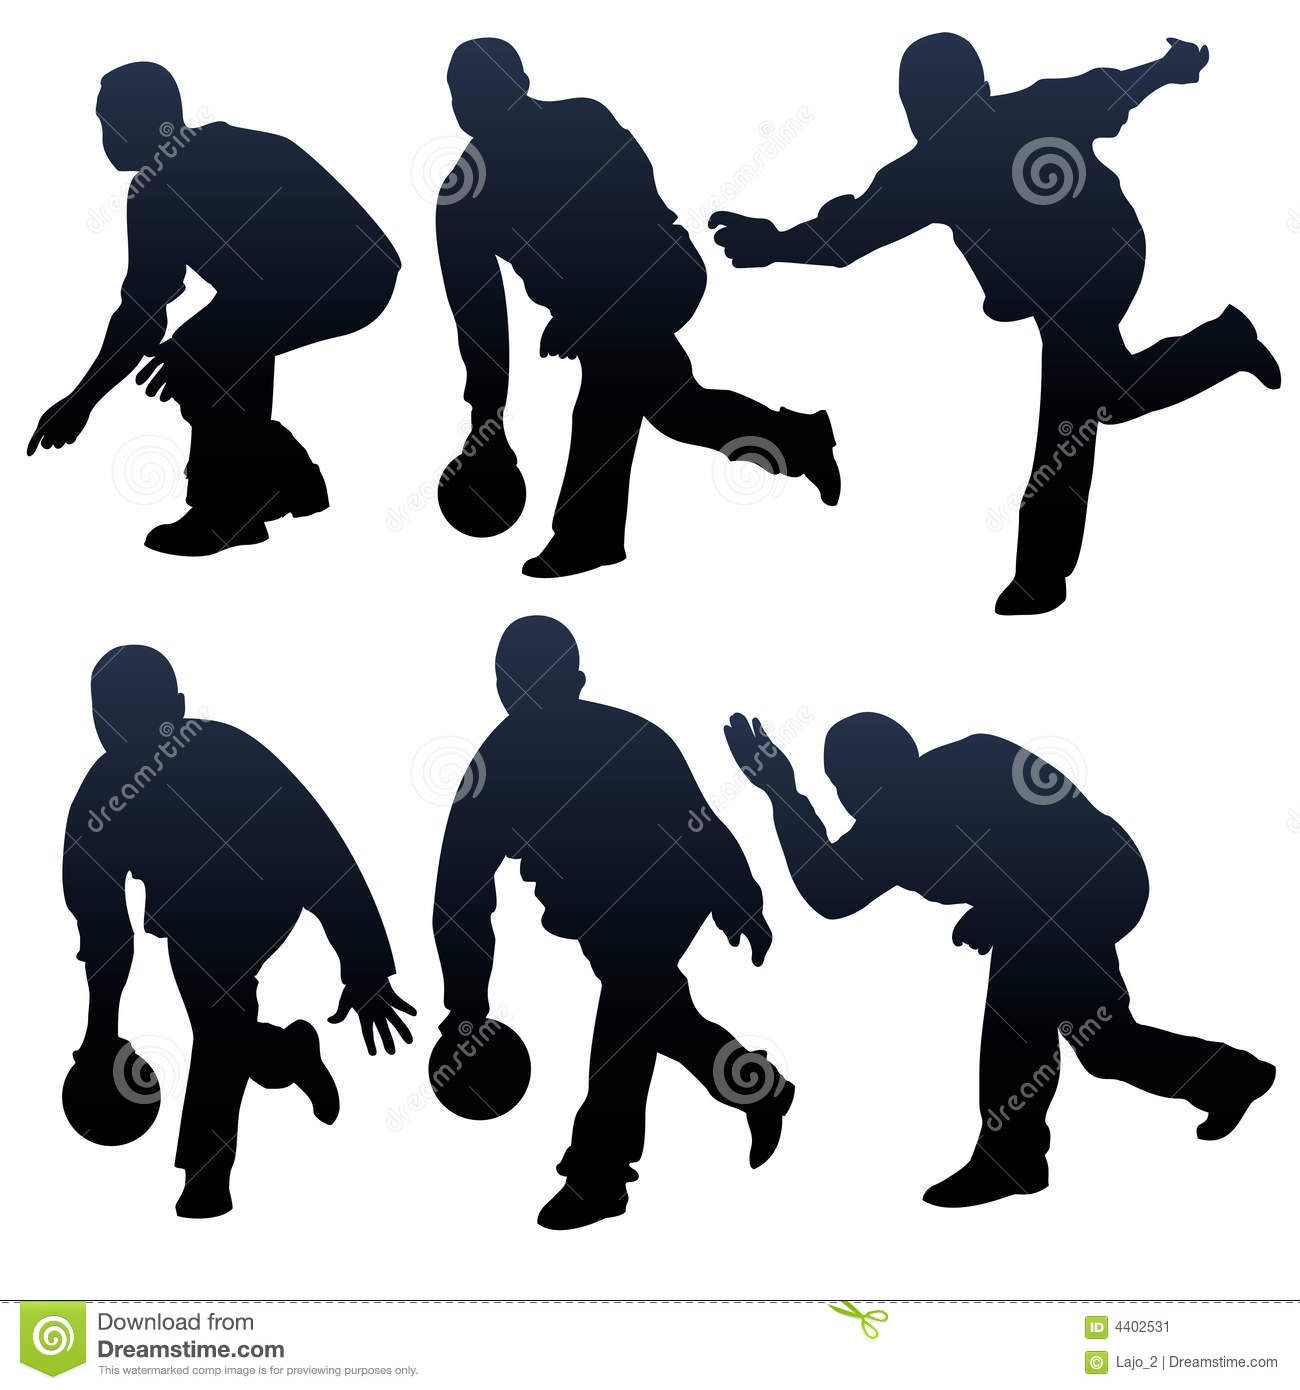 Bowling People Silhouettes Download From Over 58 Million